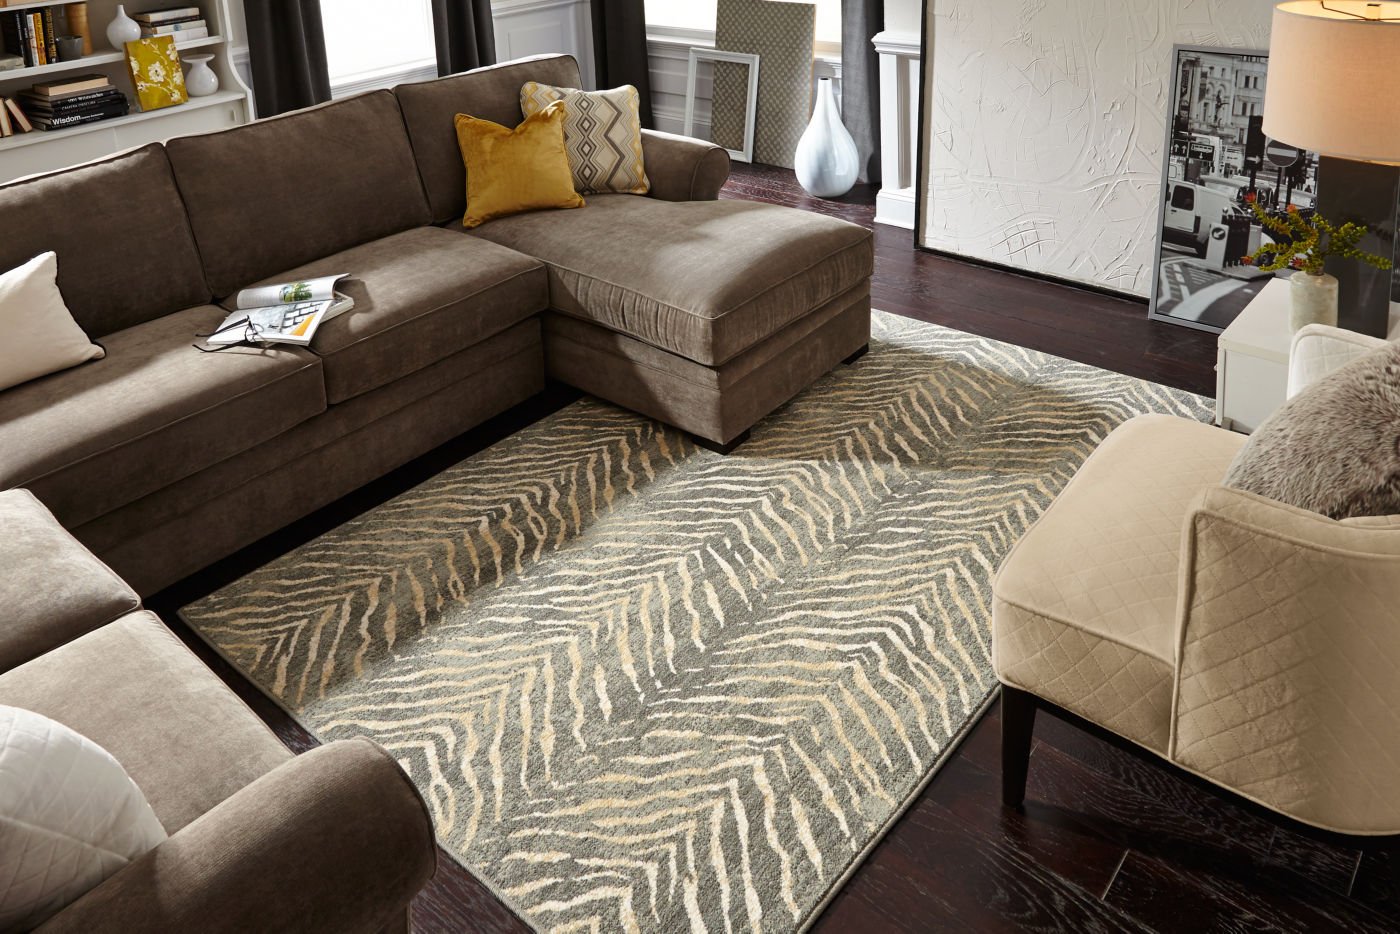 Karastan rug in living room | Carpet Your World